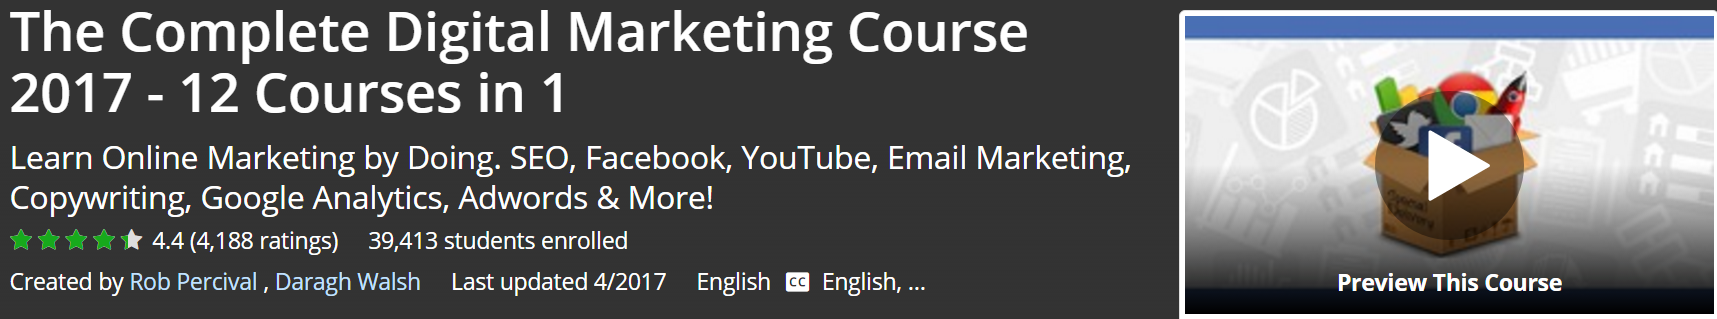 The Complete Digital Marketing Course 2017 12 Courses in 1